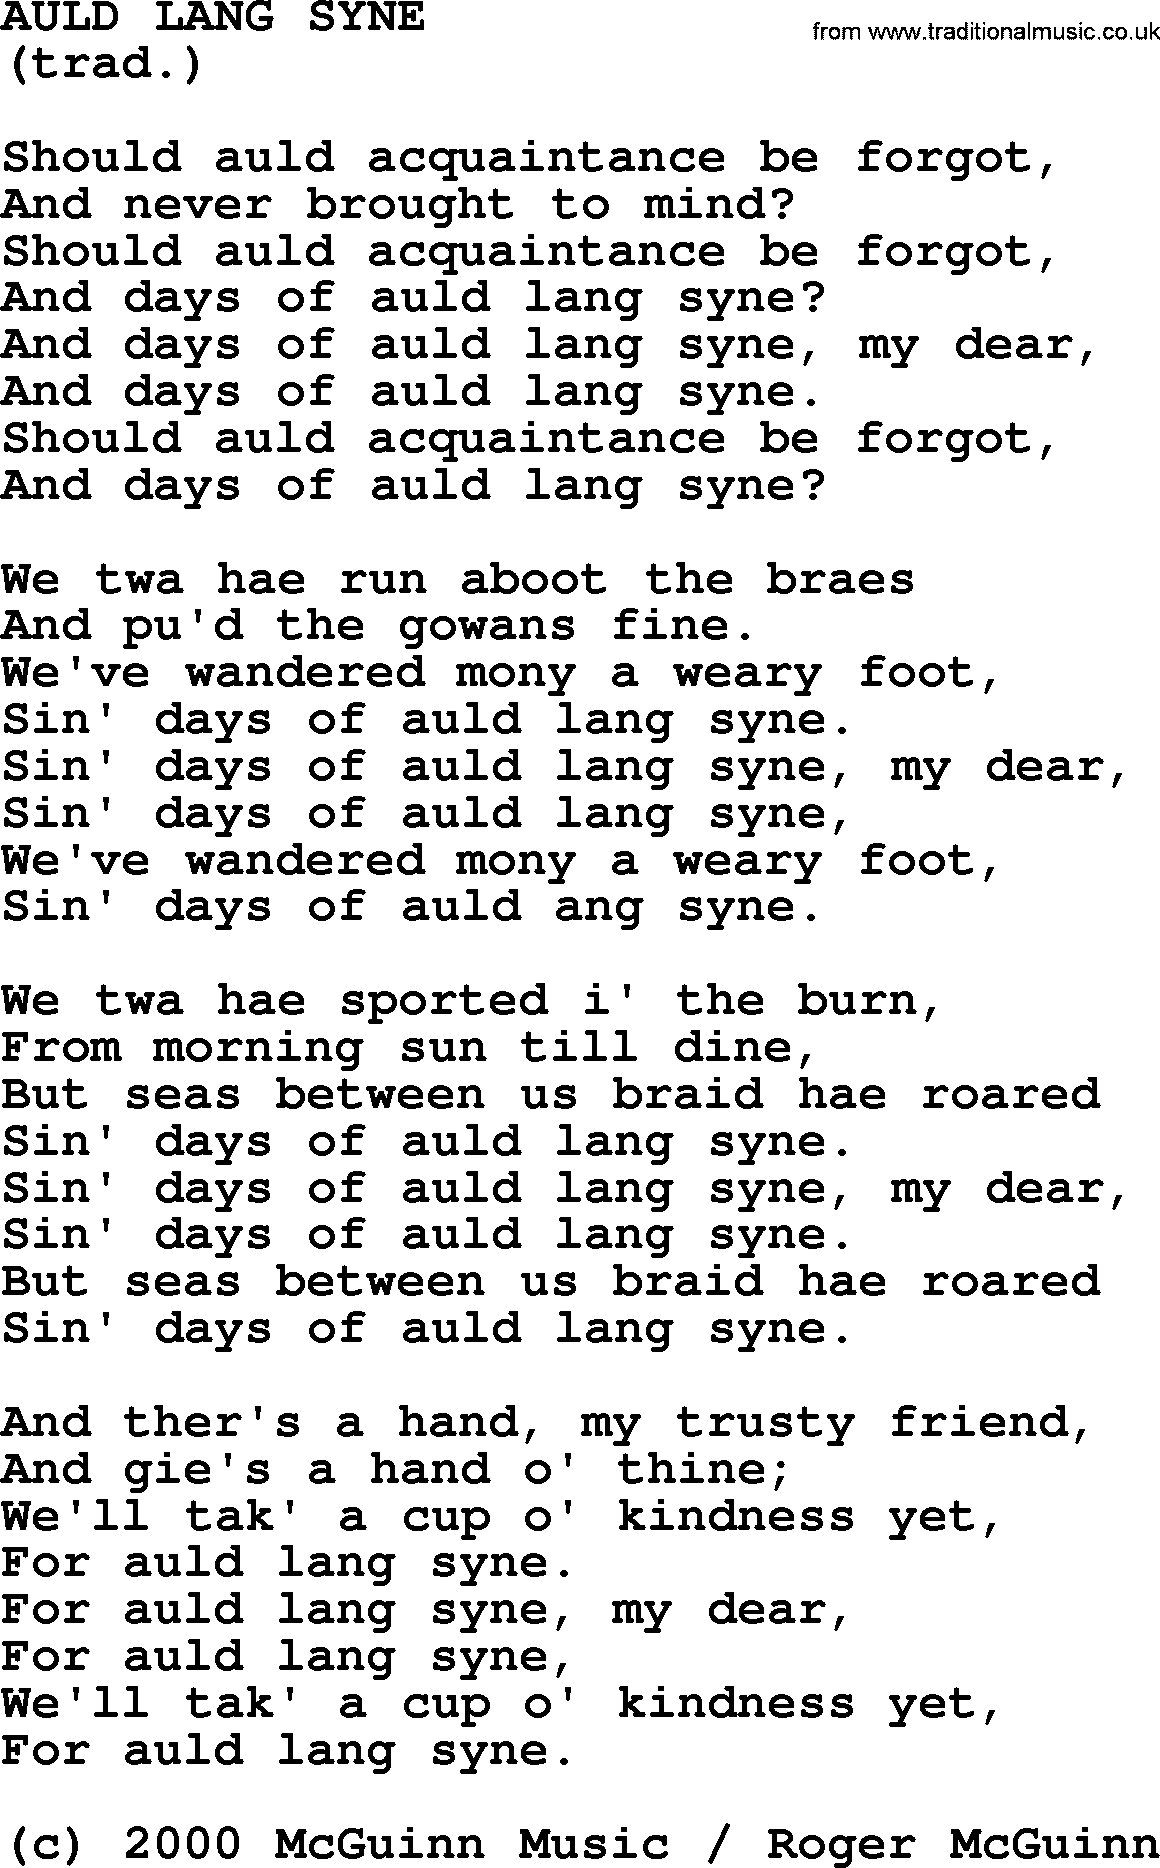 Guitar Tab, Chords and Lyrics for Auld Lang Syne - ThoughtCo